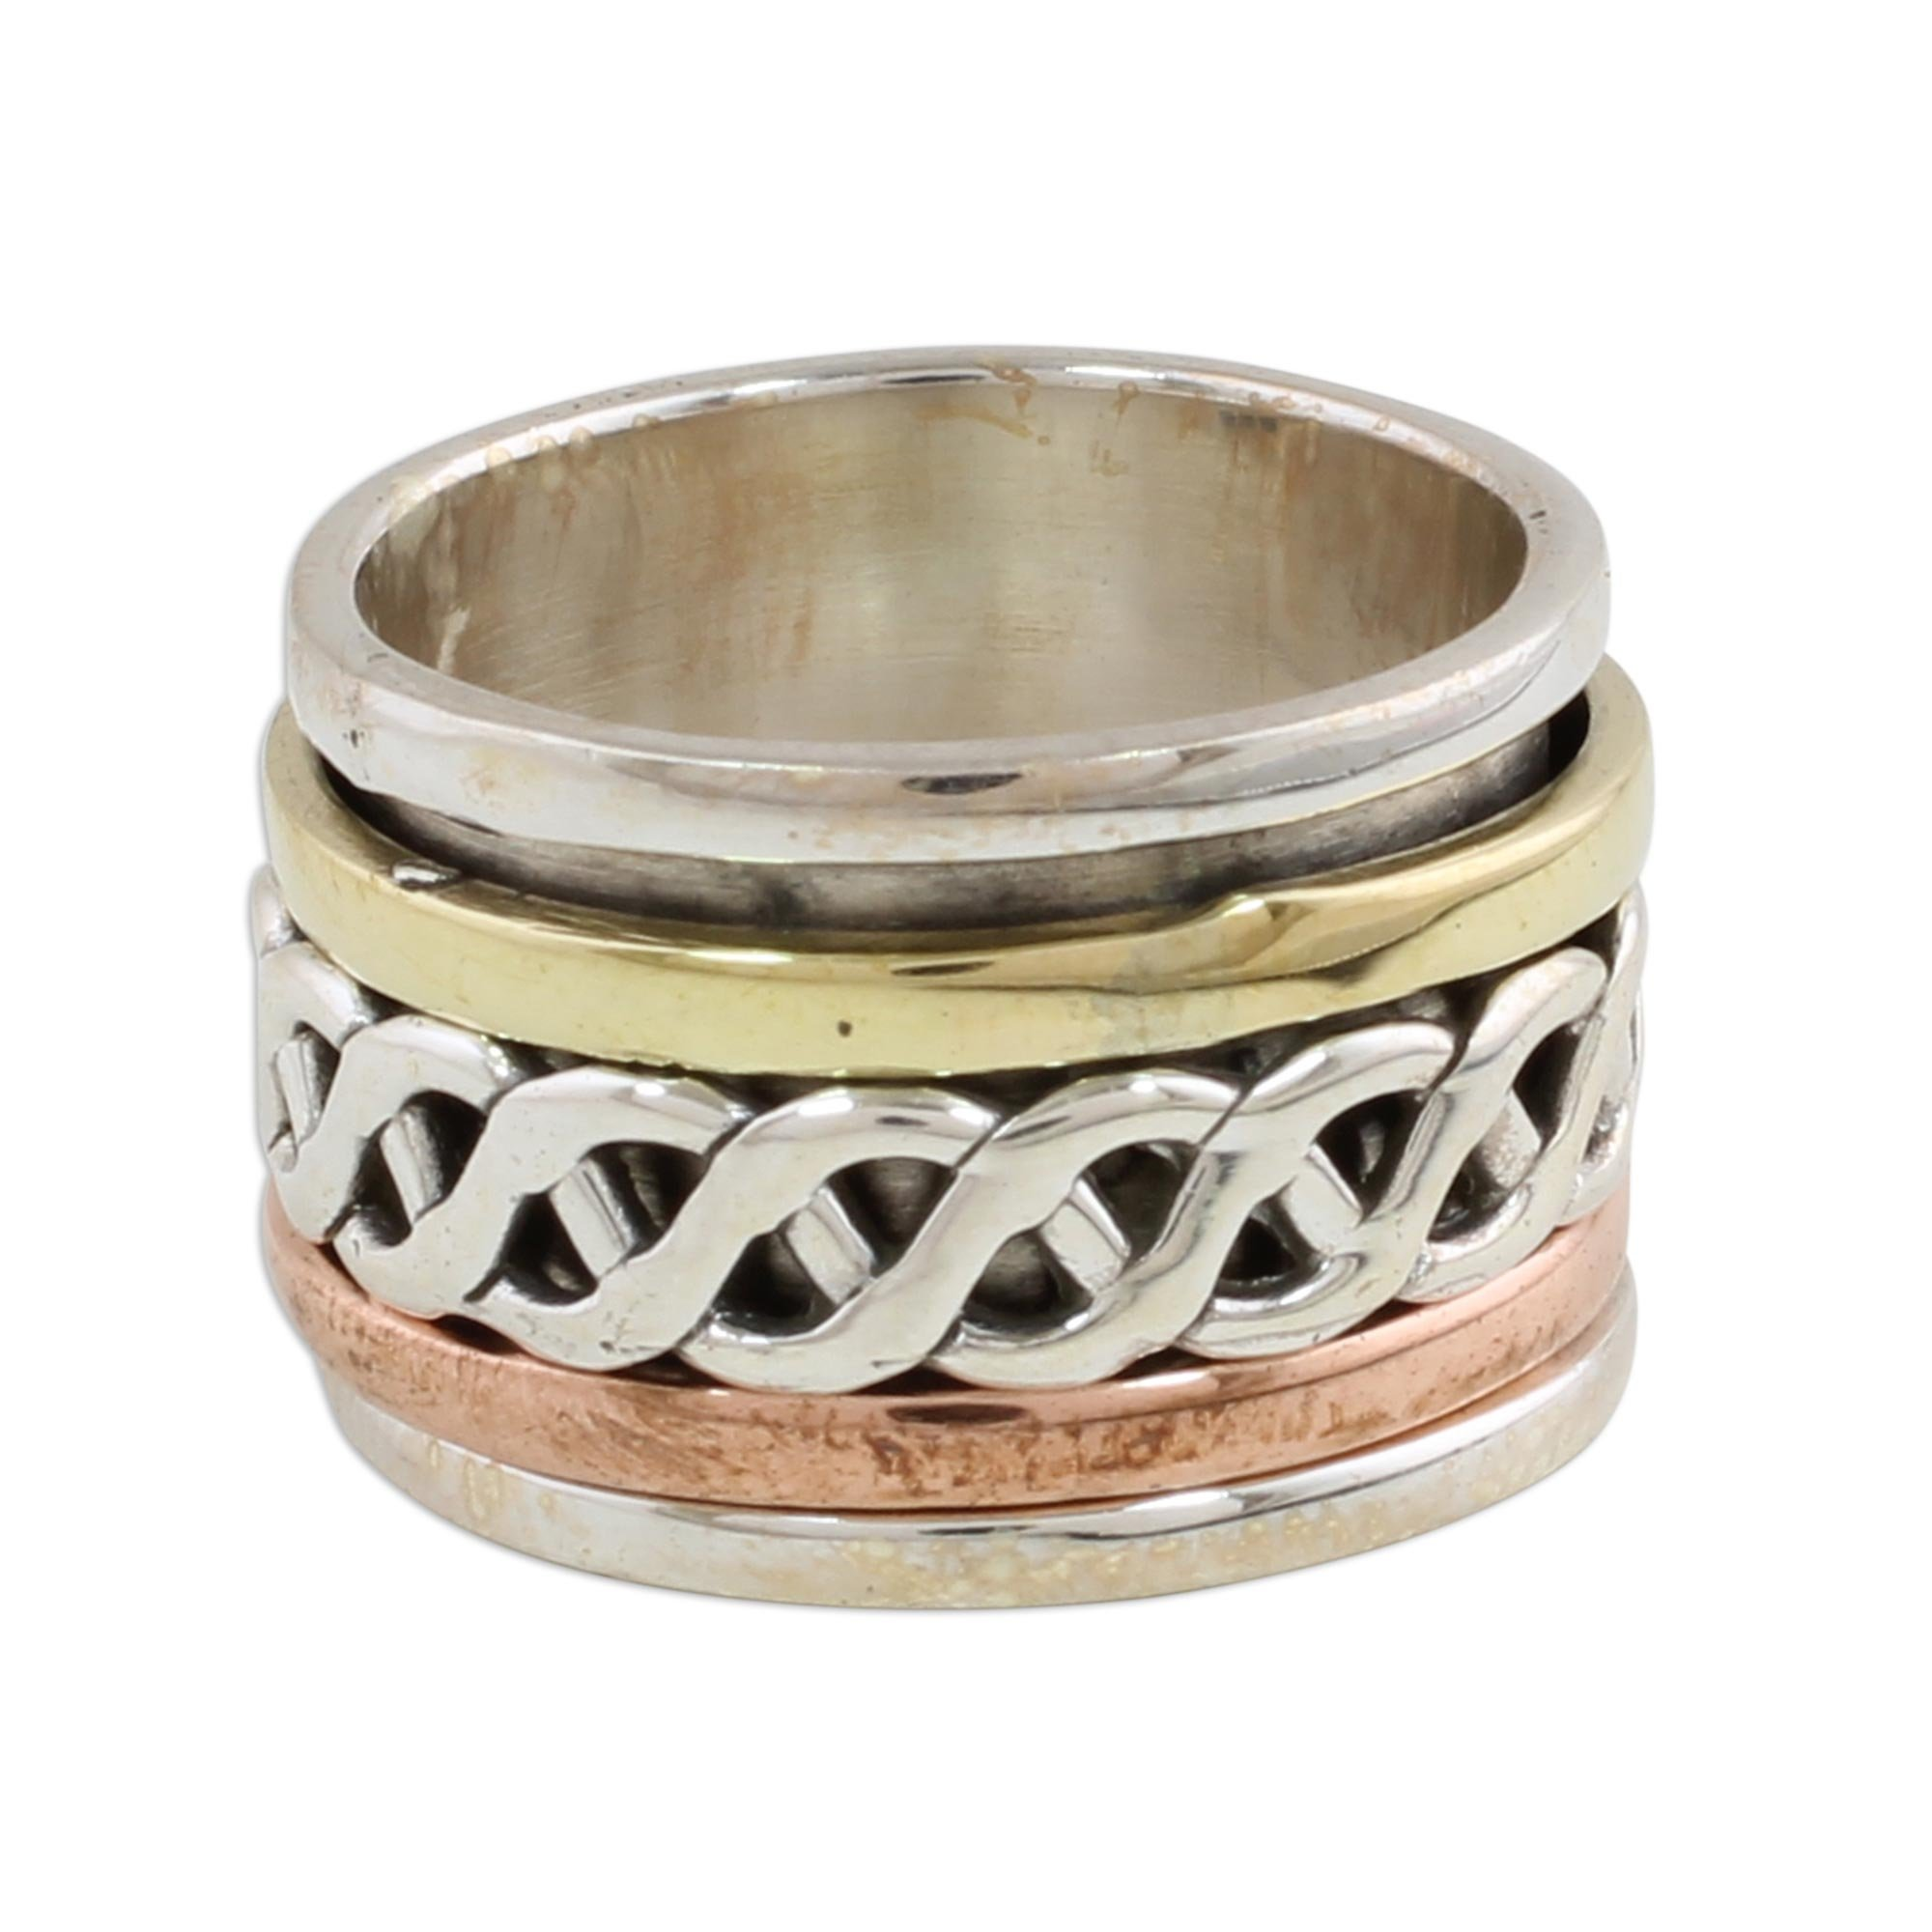 NOVICA .925 Sterling Silver Copper Brass Tri-Metal Meditation Spinner Ring 'Spinning Braid'